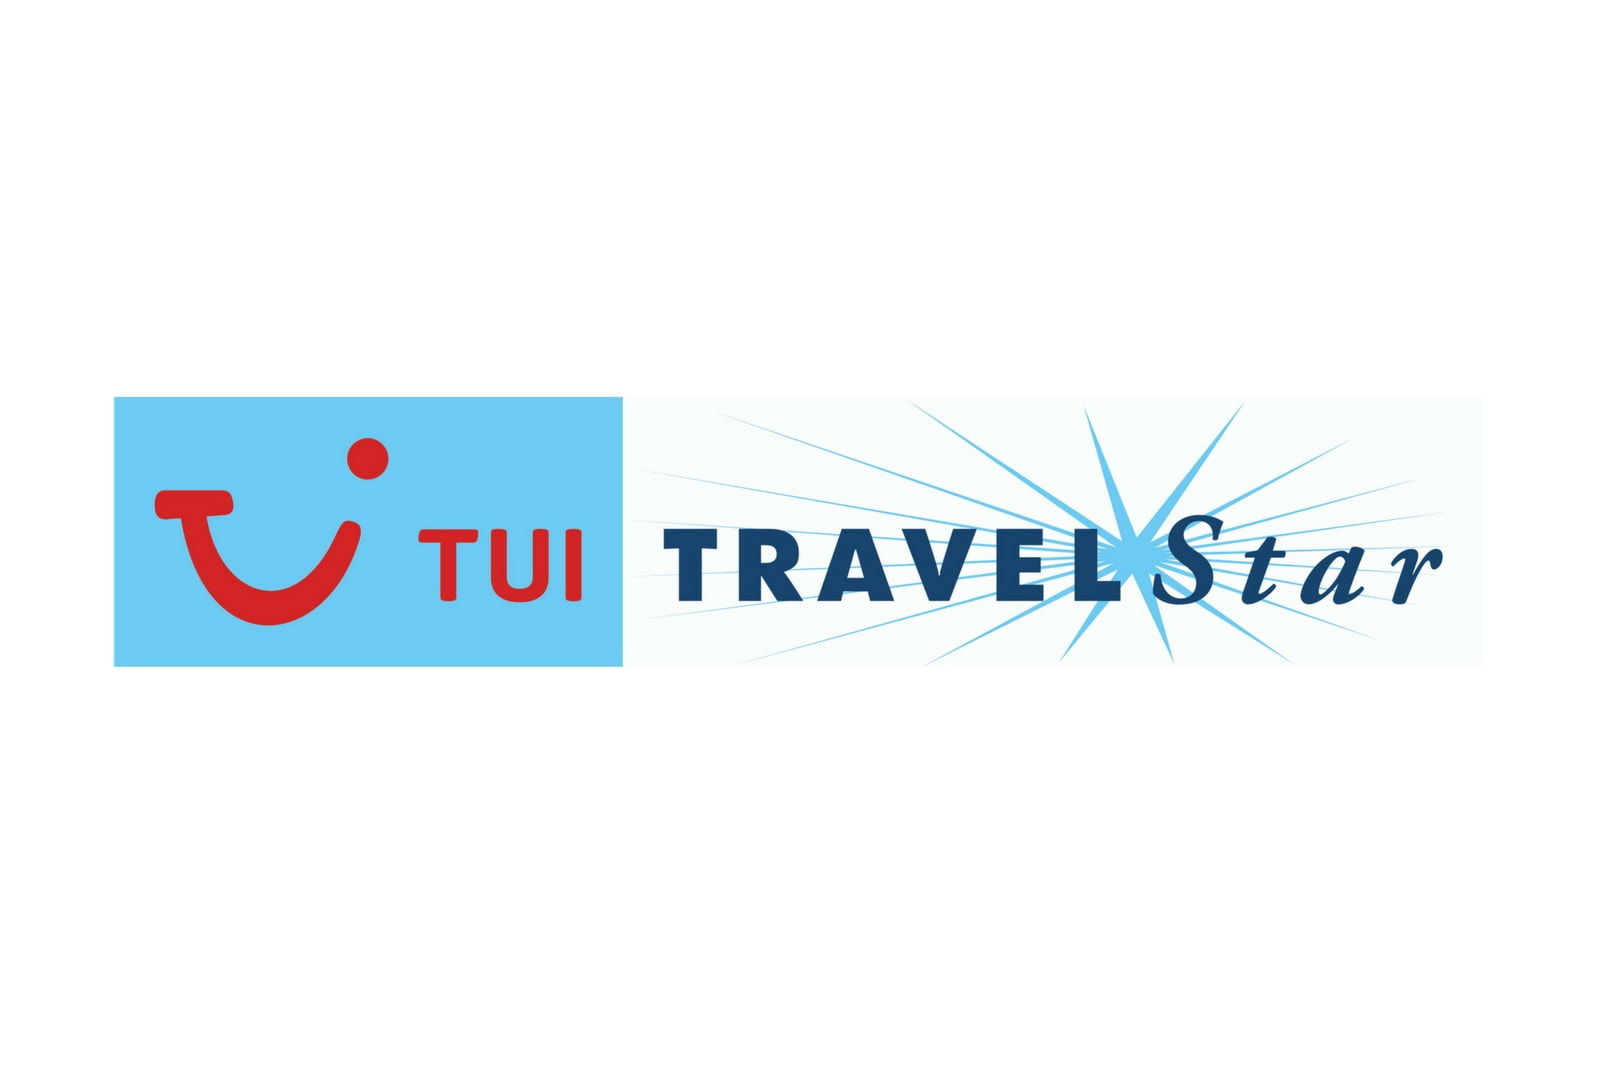 Tui Travel Star - Song